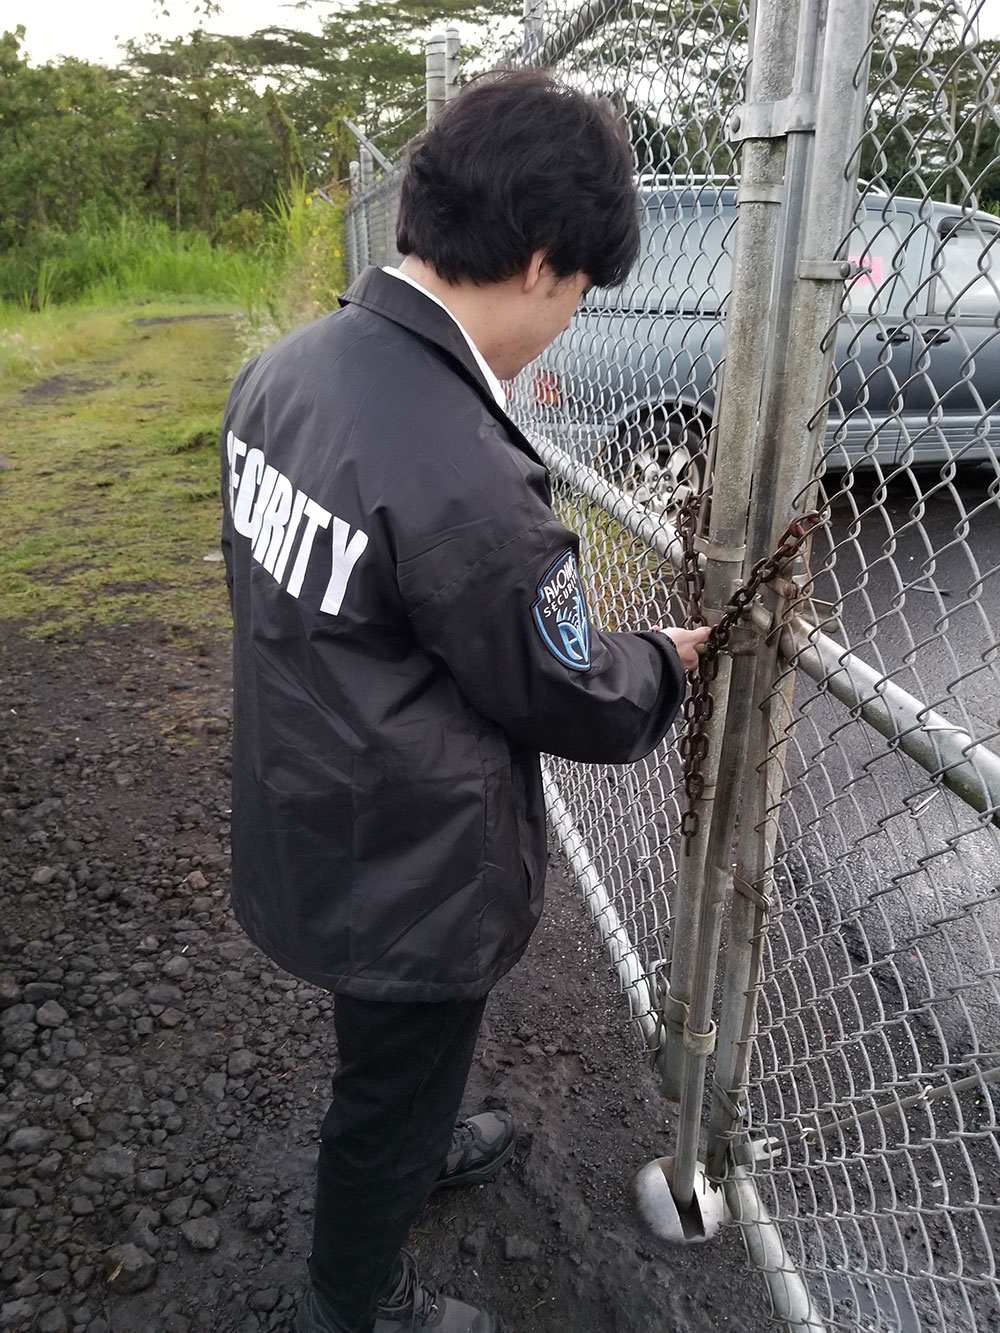 Aloha Security is focused solely on protecting the safety and confidentiality of our clients.